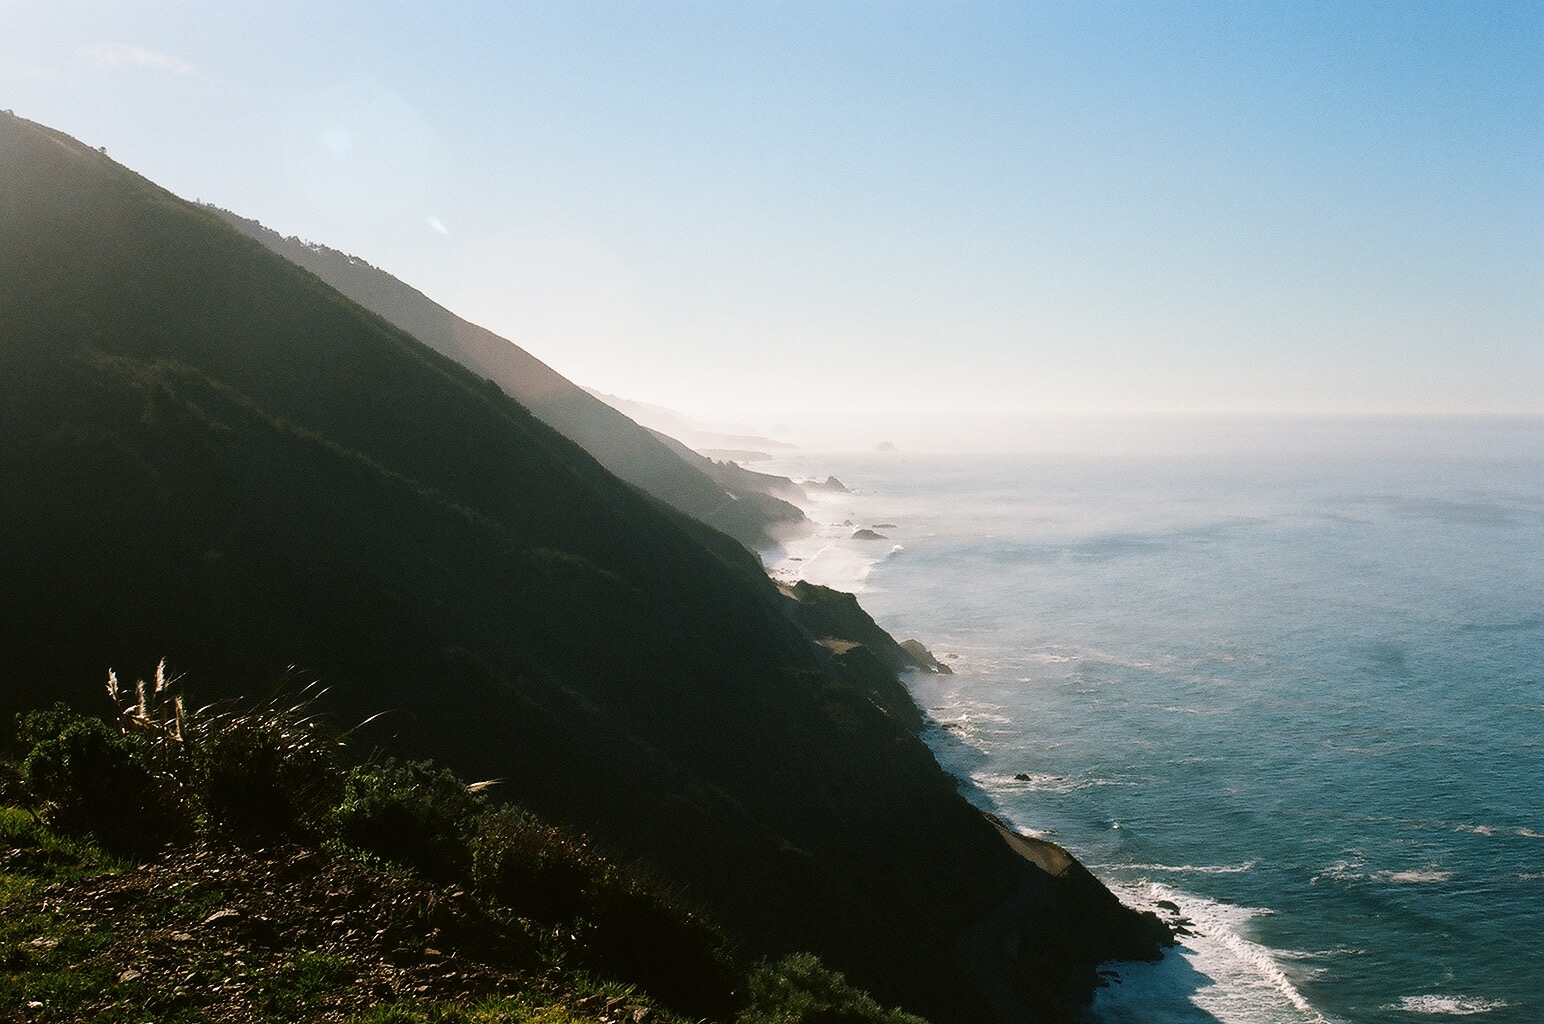 I shoot a ton of film. Here's one of my favorite photos shot on film with Ektar 100.